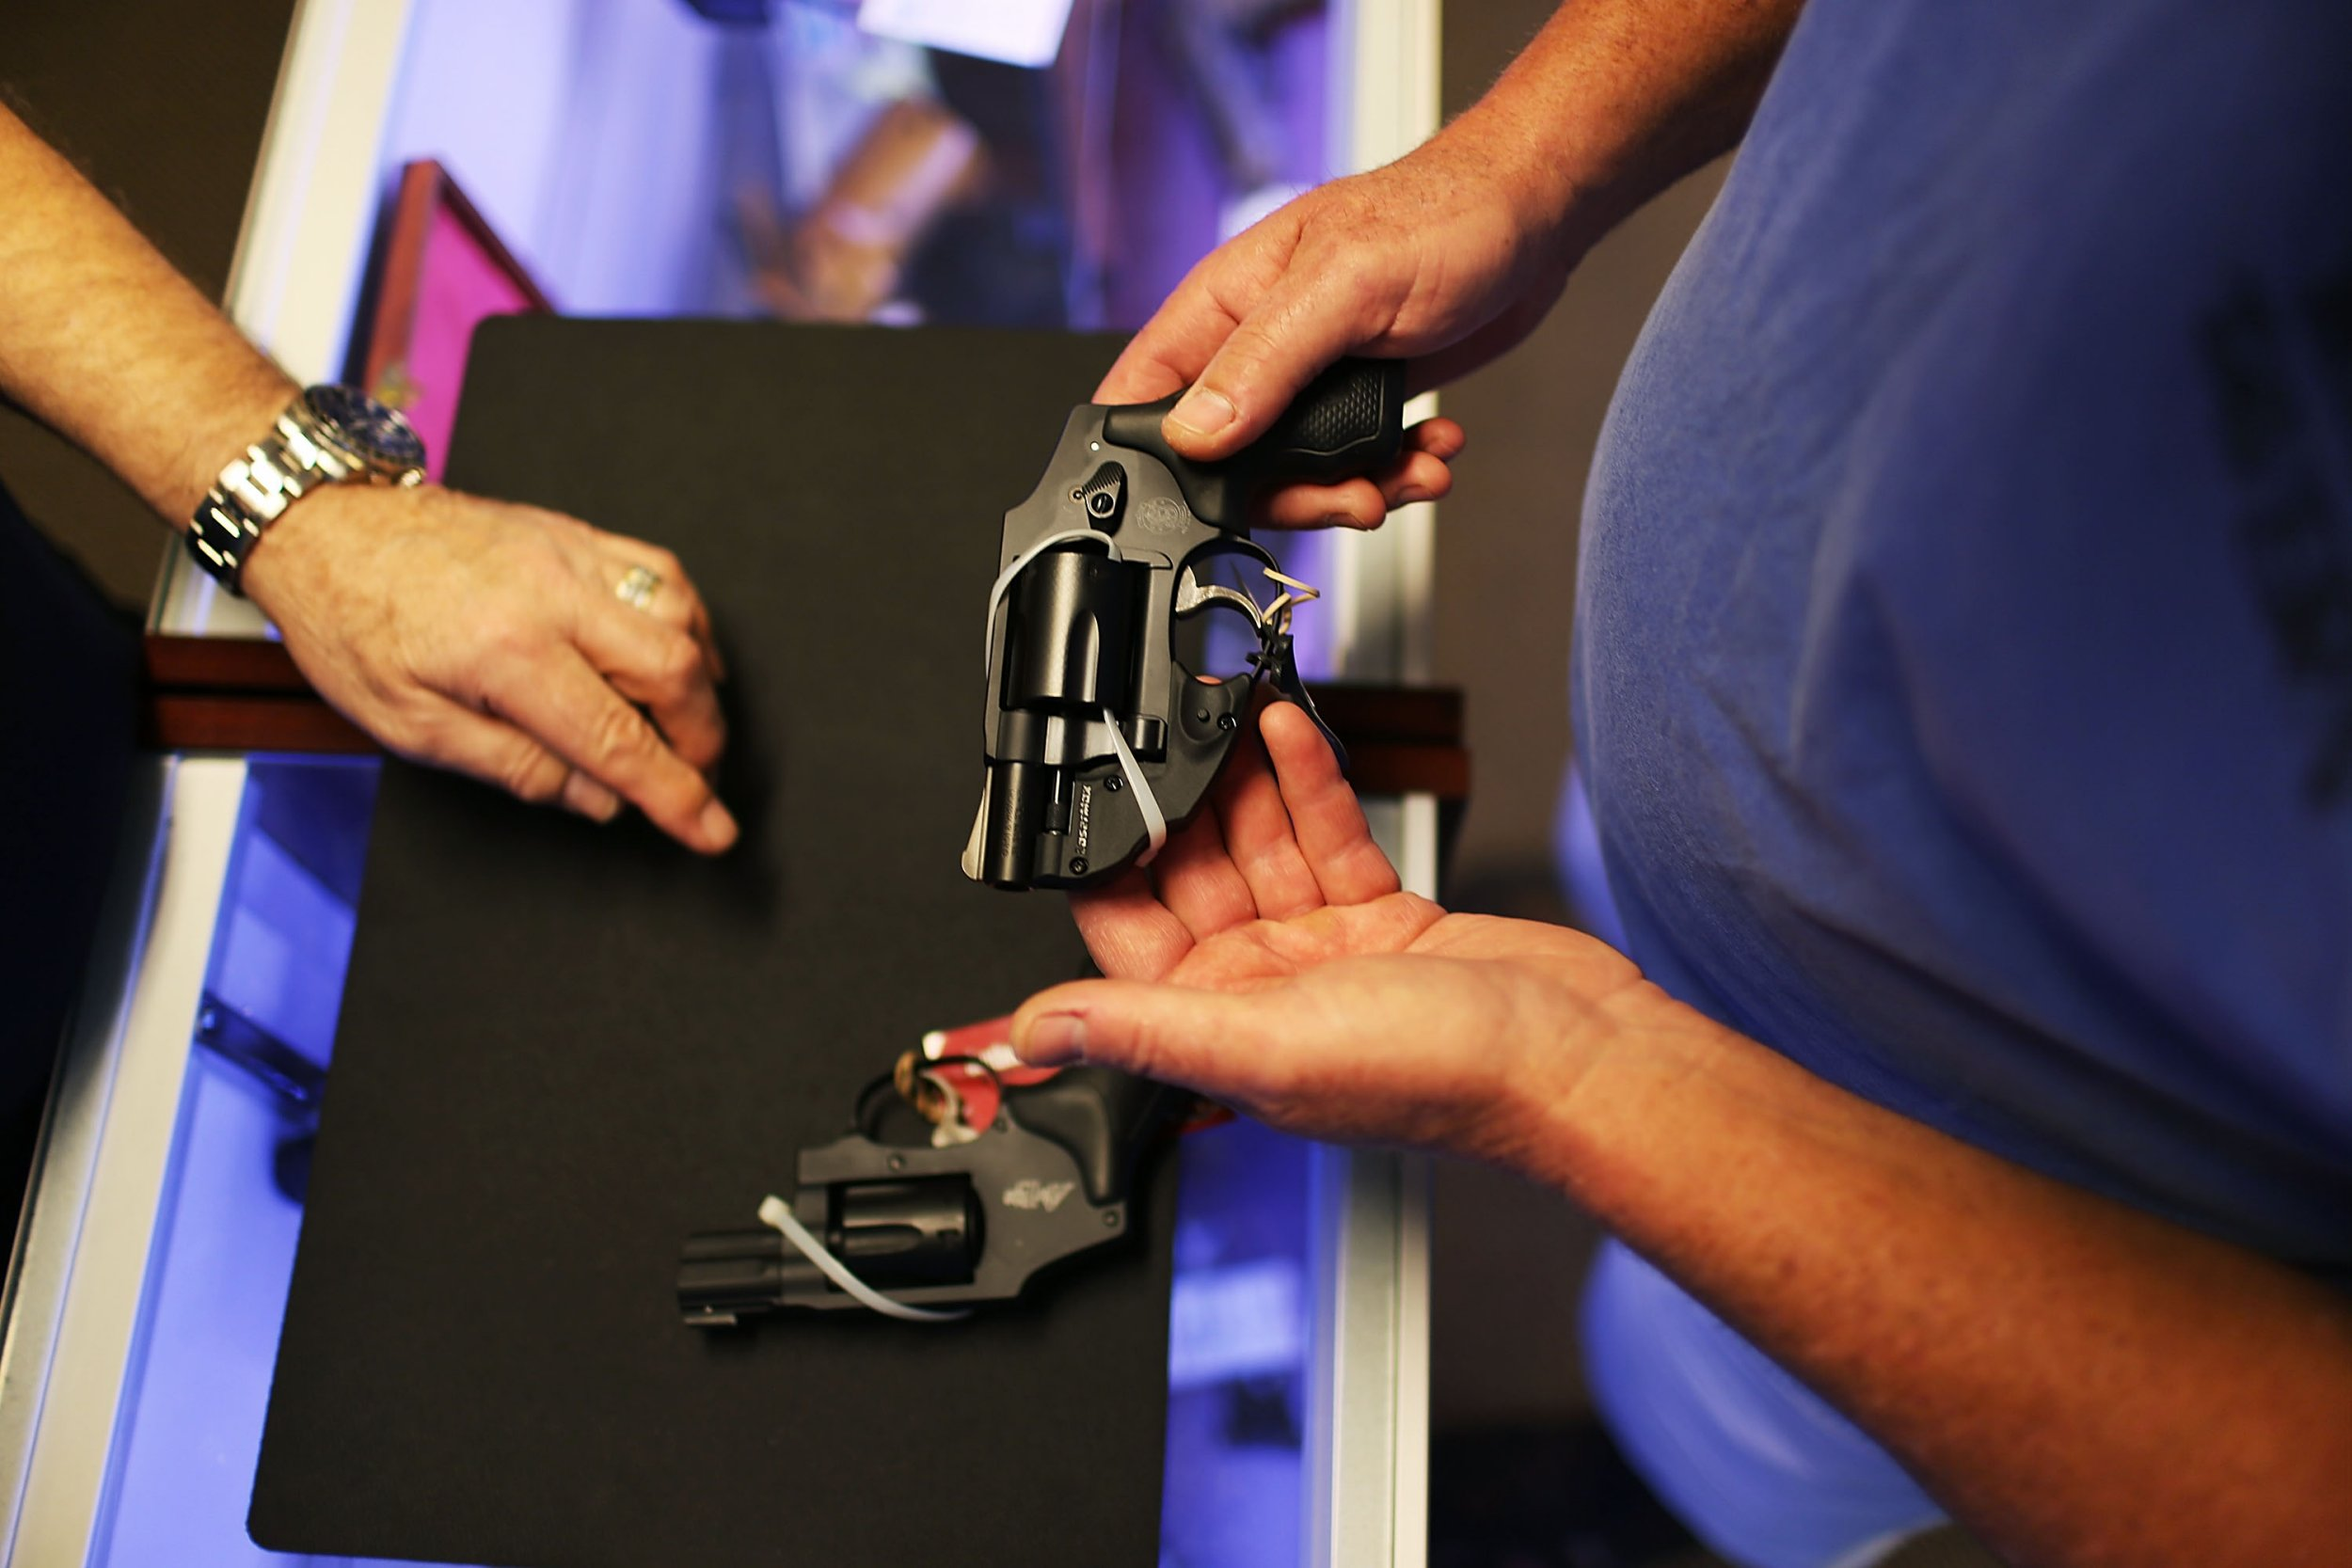 Thousands of Americans with mental illness could buy guns after Trump strikes down Obama's rule against it (Getty) DELRAY BEACH, FL - JANUARY 05: A customer shops for a handgun at the K&W Gunworks store on the day that U.S. President Barack Obama in Washington, DC announced his executive action on guns on January 5, 2016 in Delray Beach, Florida. President Obama announced several measures that he says are intended to advance his gun safety agenda. (Photo by Joe Raedle/Getty Images)